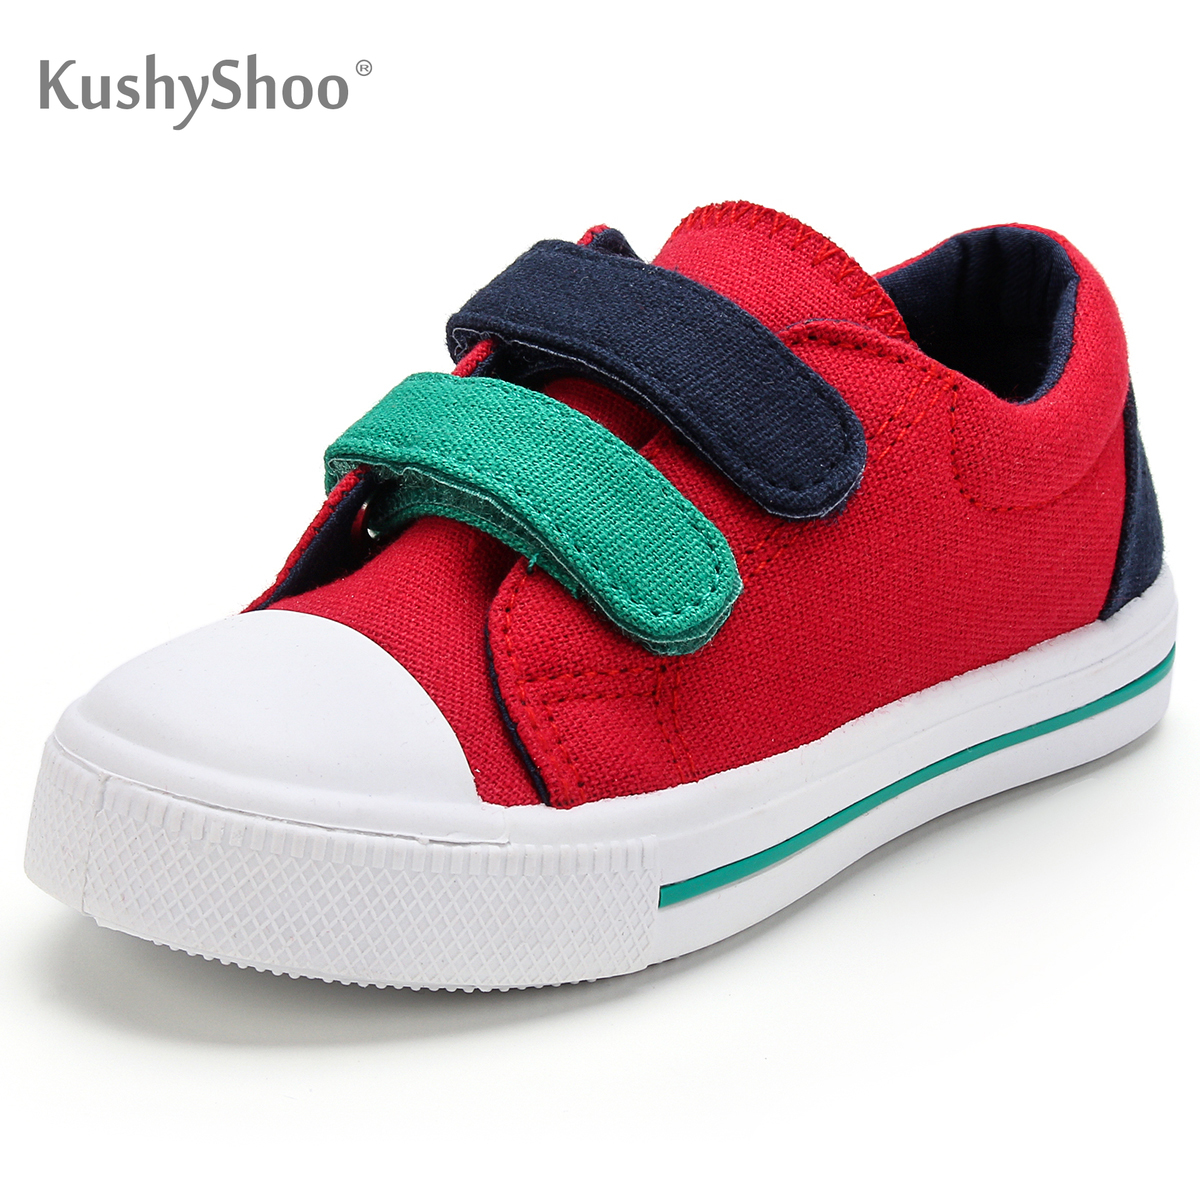 KushyShoo Toddler Sneakers Kids Girls Soft Sports Shoes Red Double Hook Kid Shoes Boys Sneakers Canvas Shoes Children